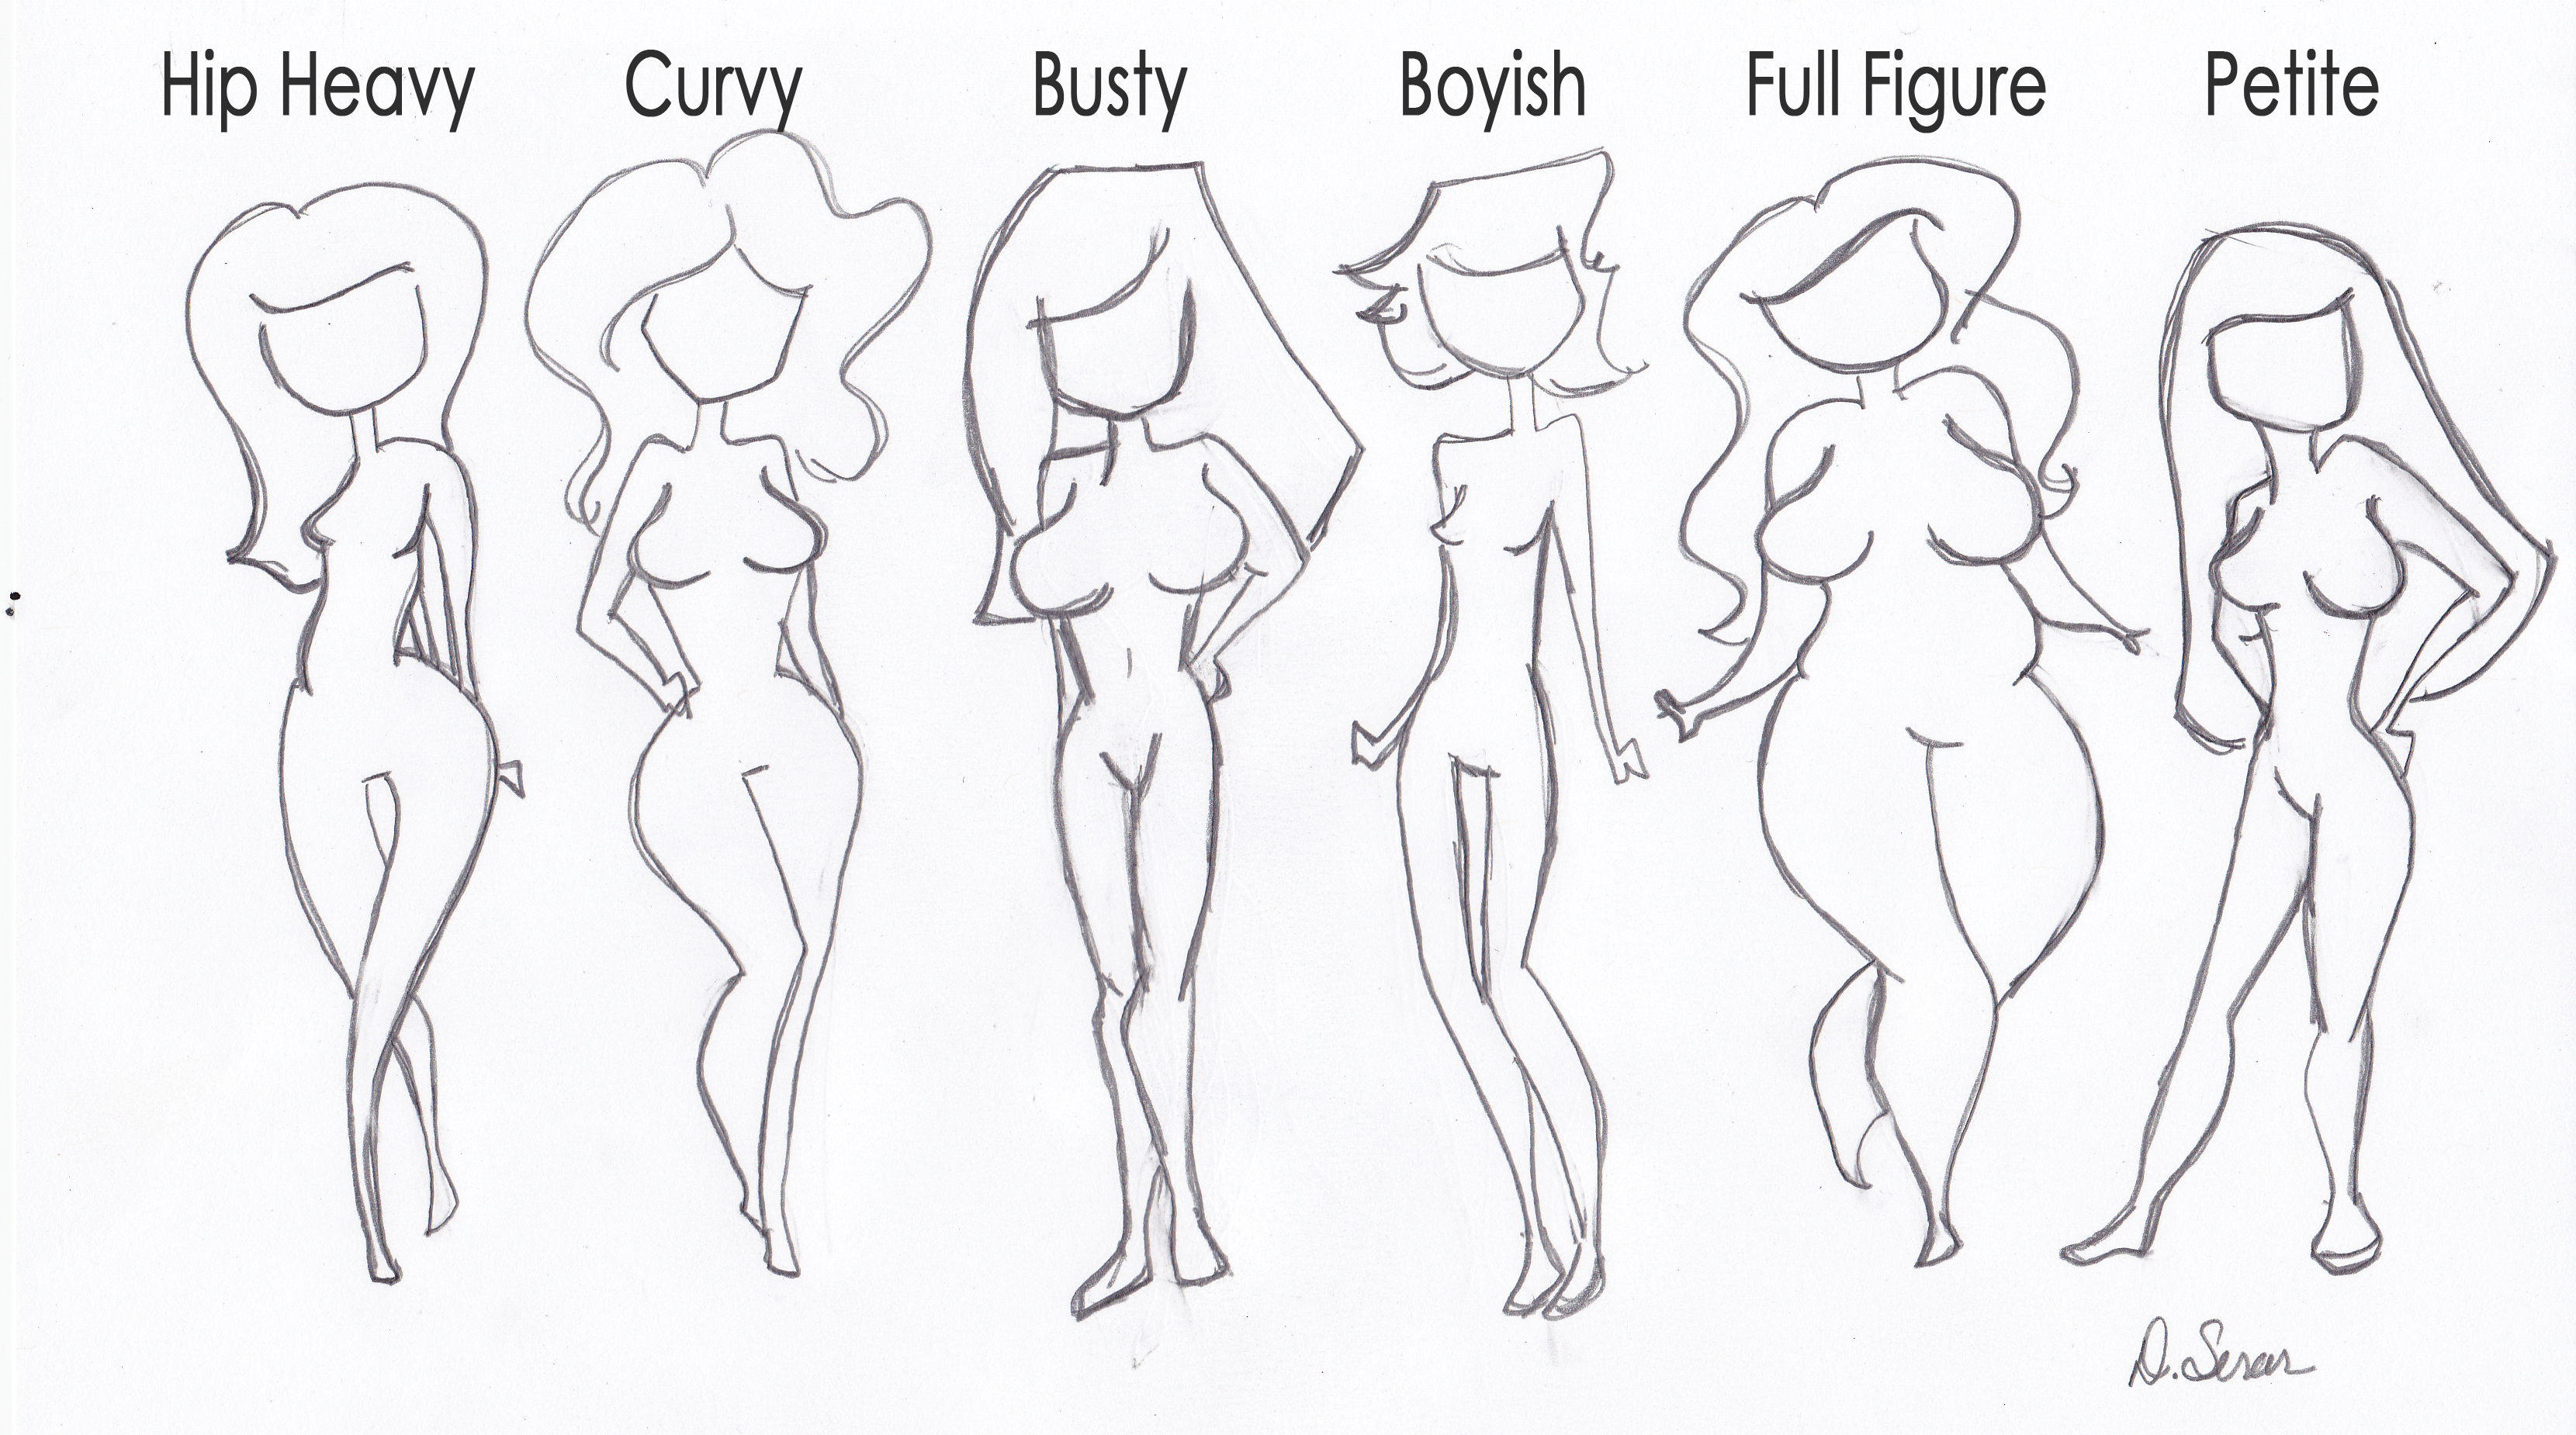 My rendition of common body shapes